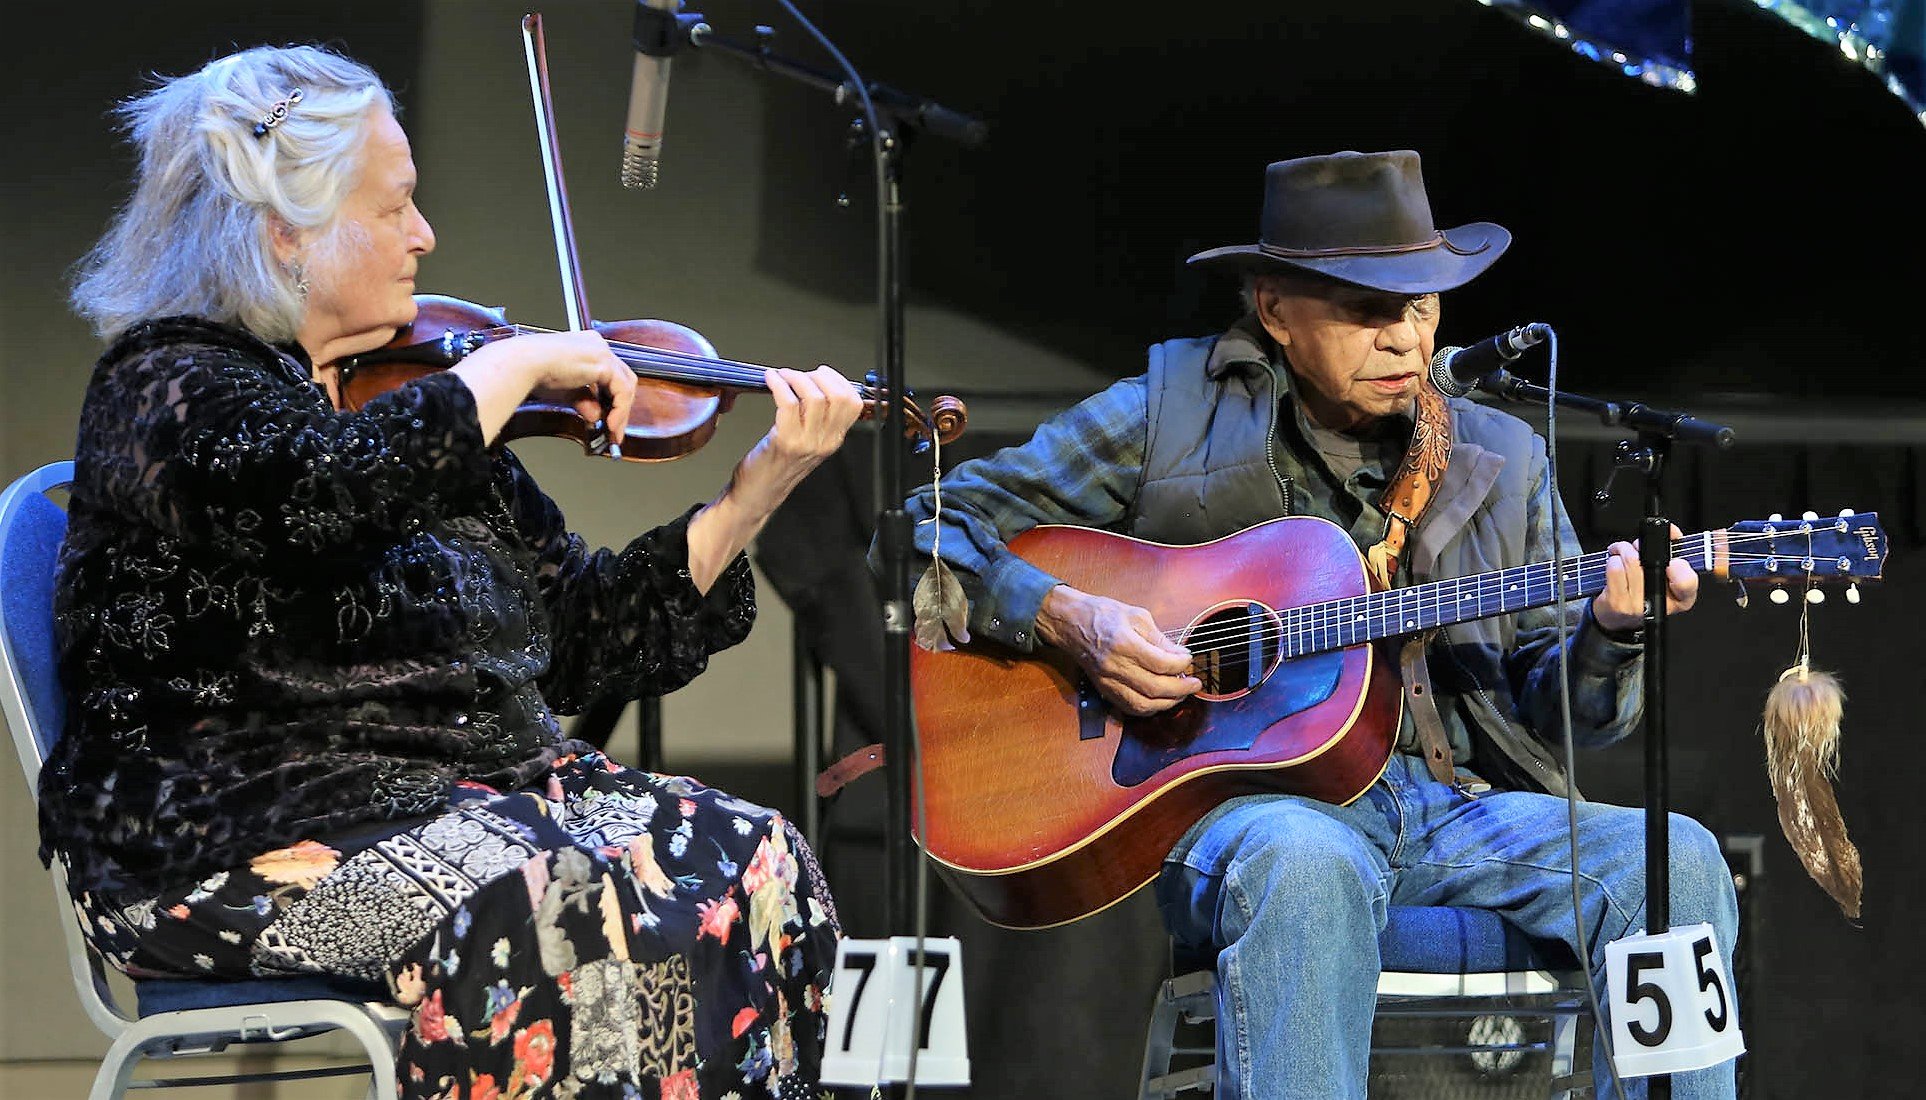 Yukon Cowboy Shares Love Of Old Country Songs At Folk Festival